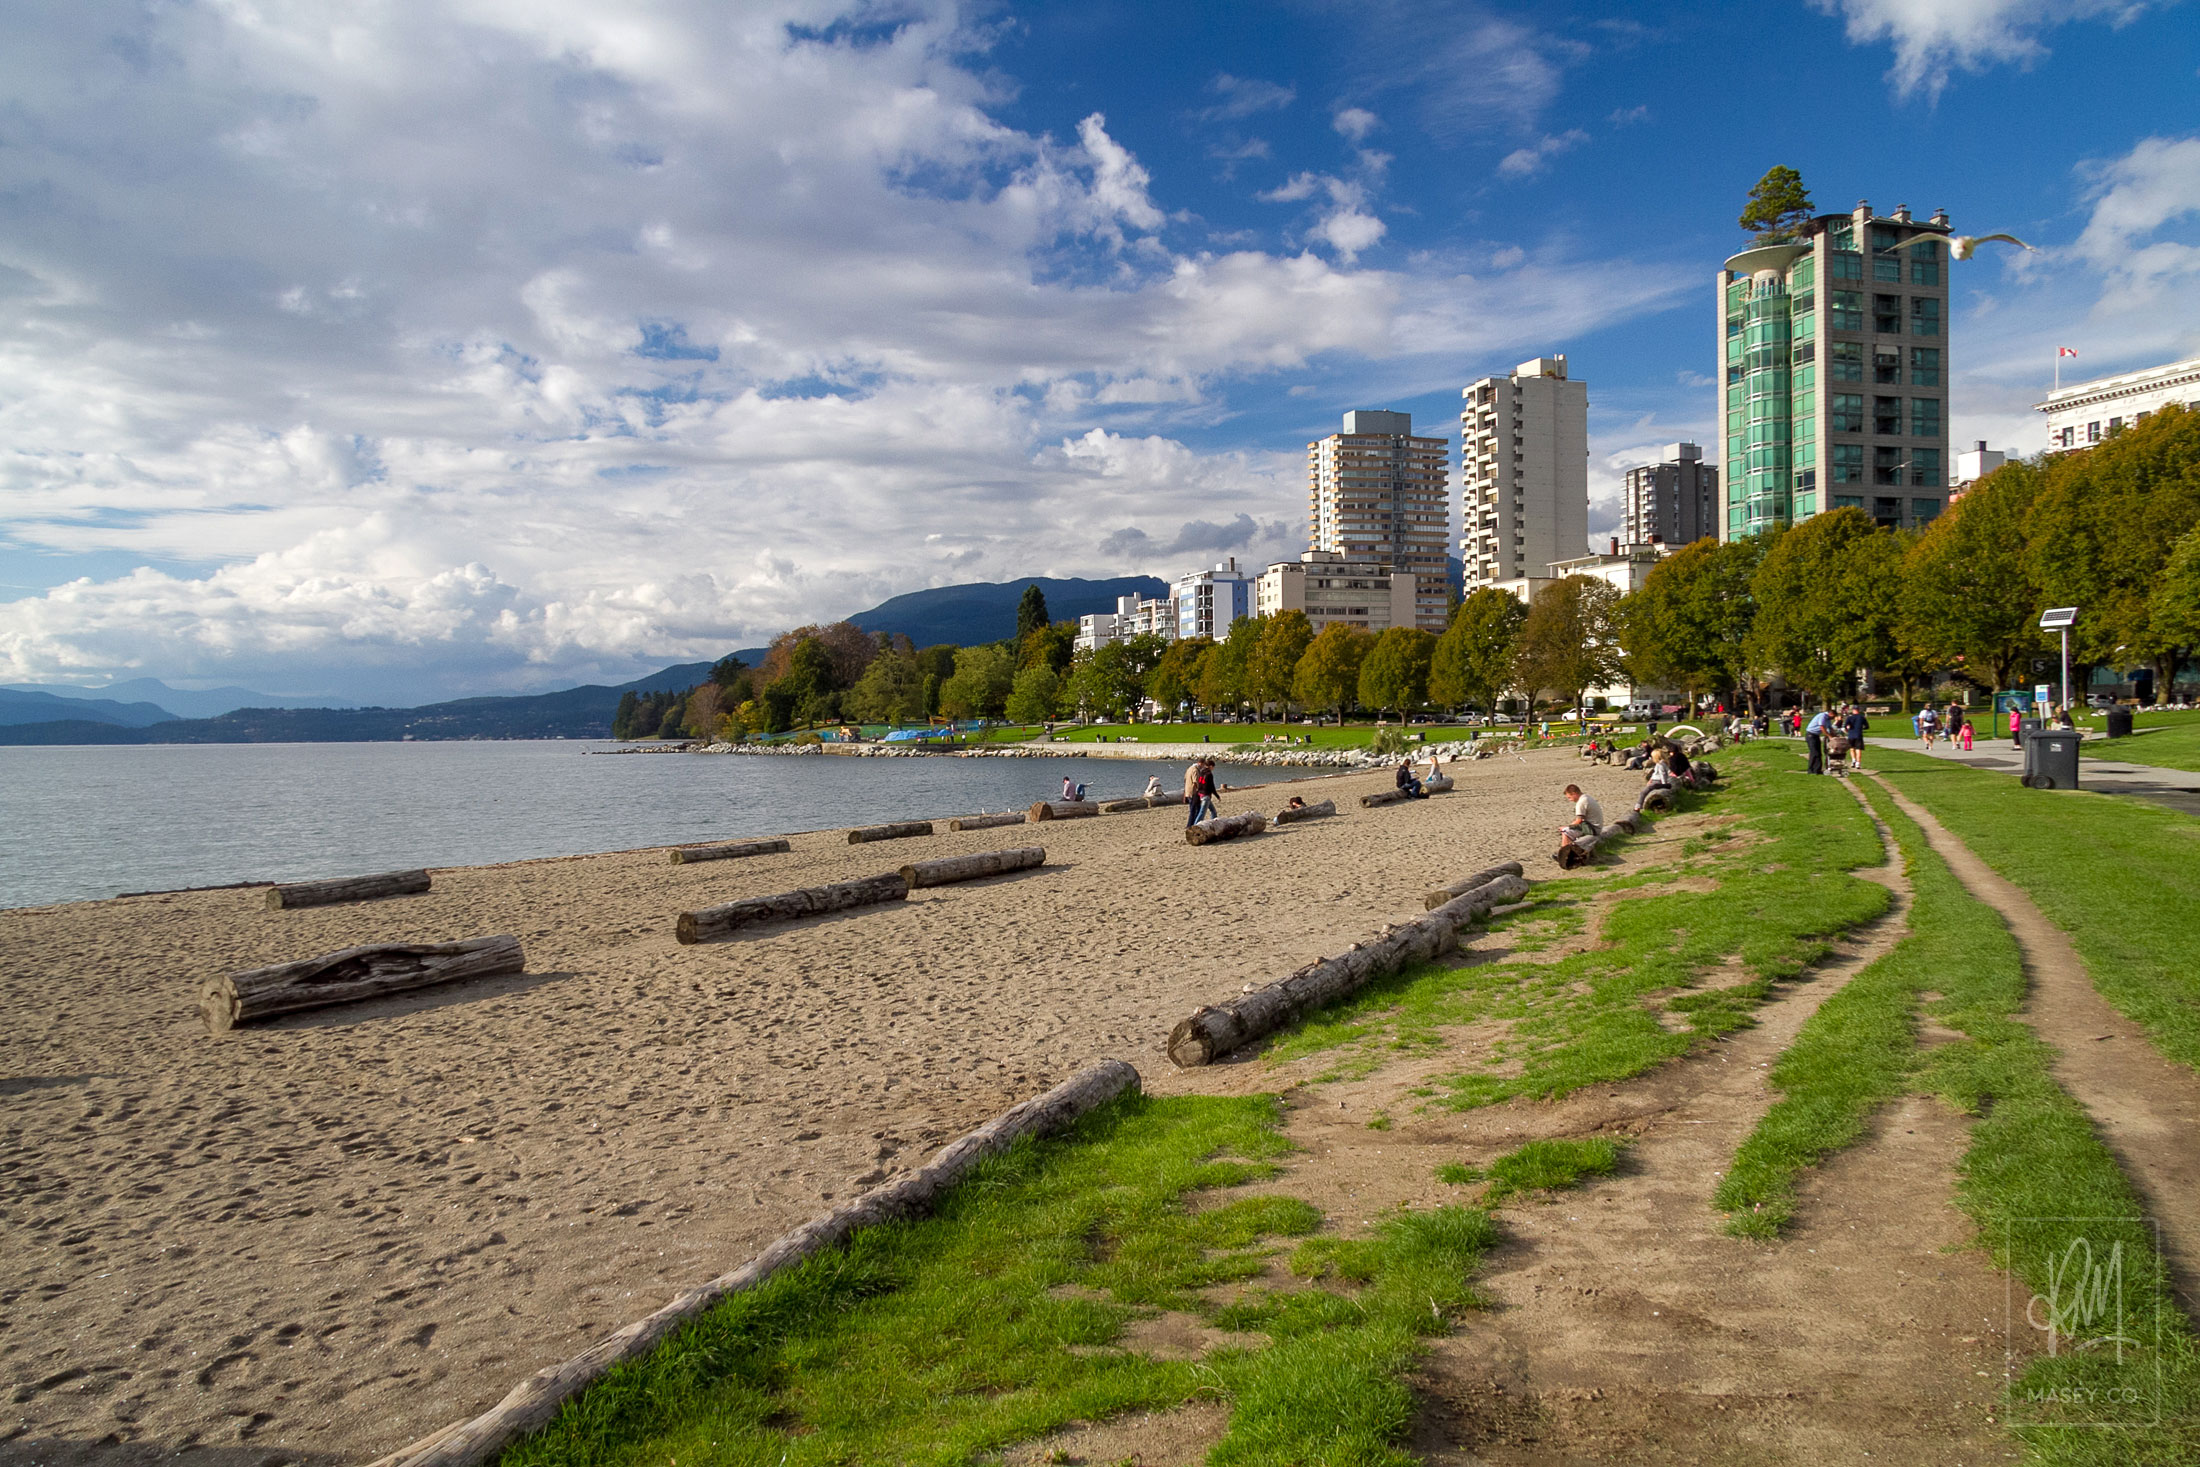 Vancouver's place to meet - the main beach on English Bay